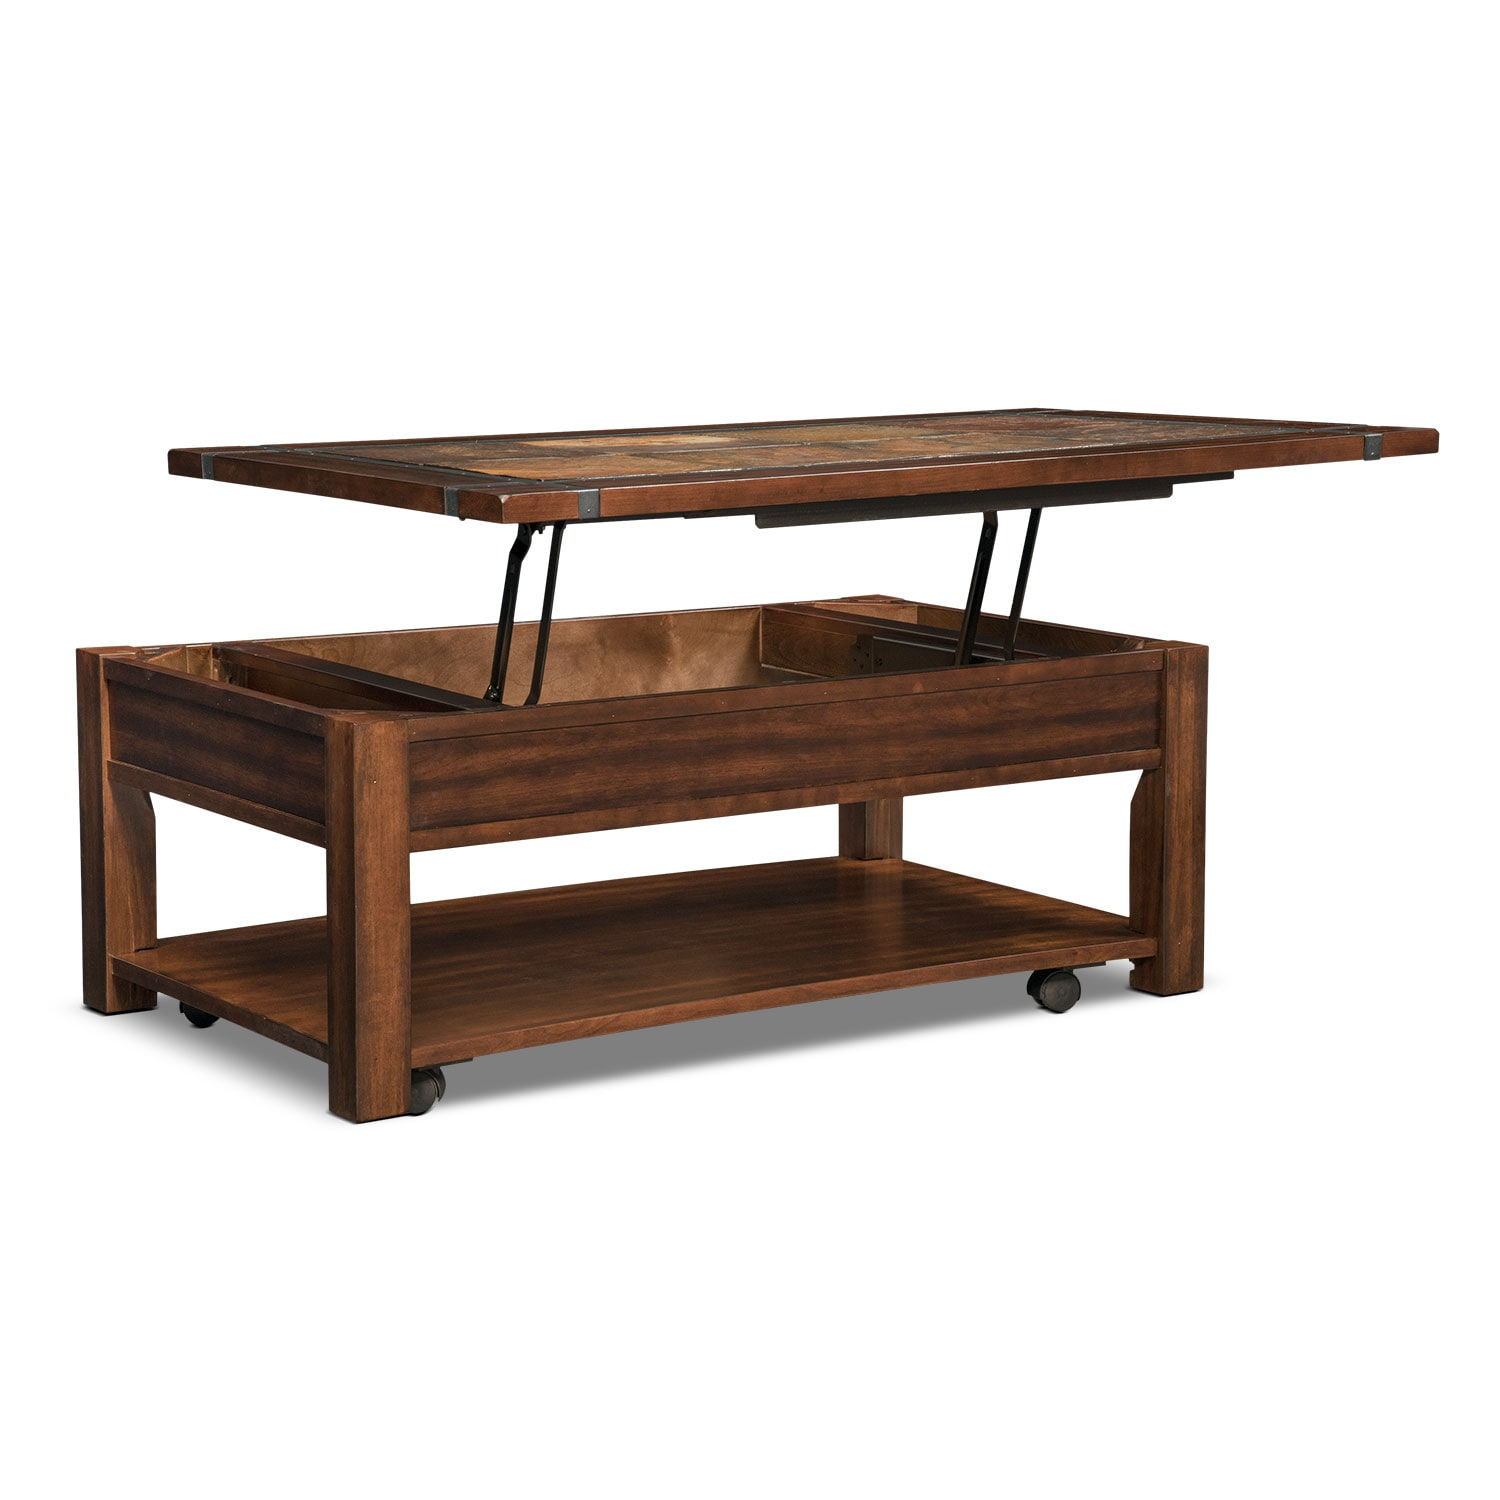 Lift Top Coffee Table Cherry: Slate Ridge Lift-Top Cocktail Table - Cherry